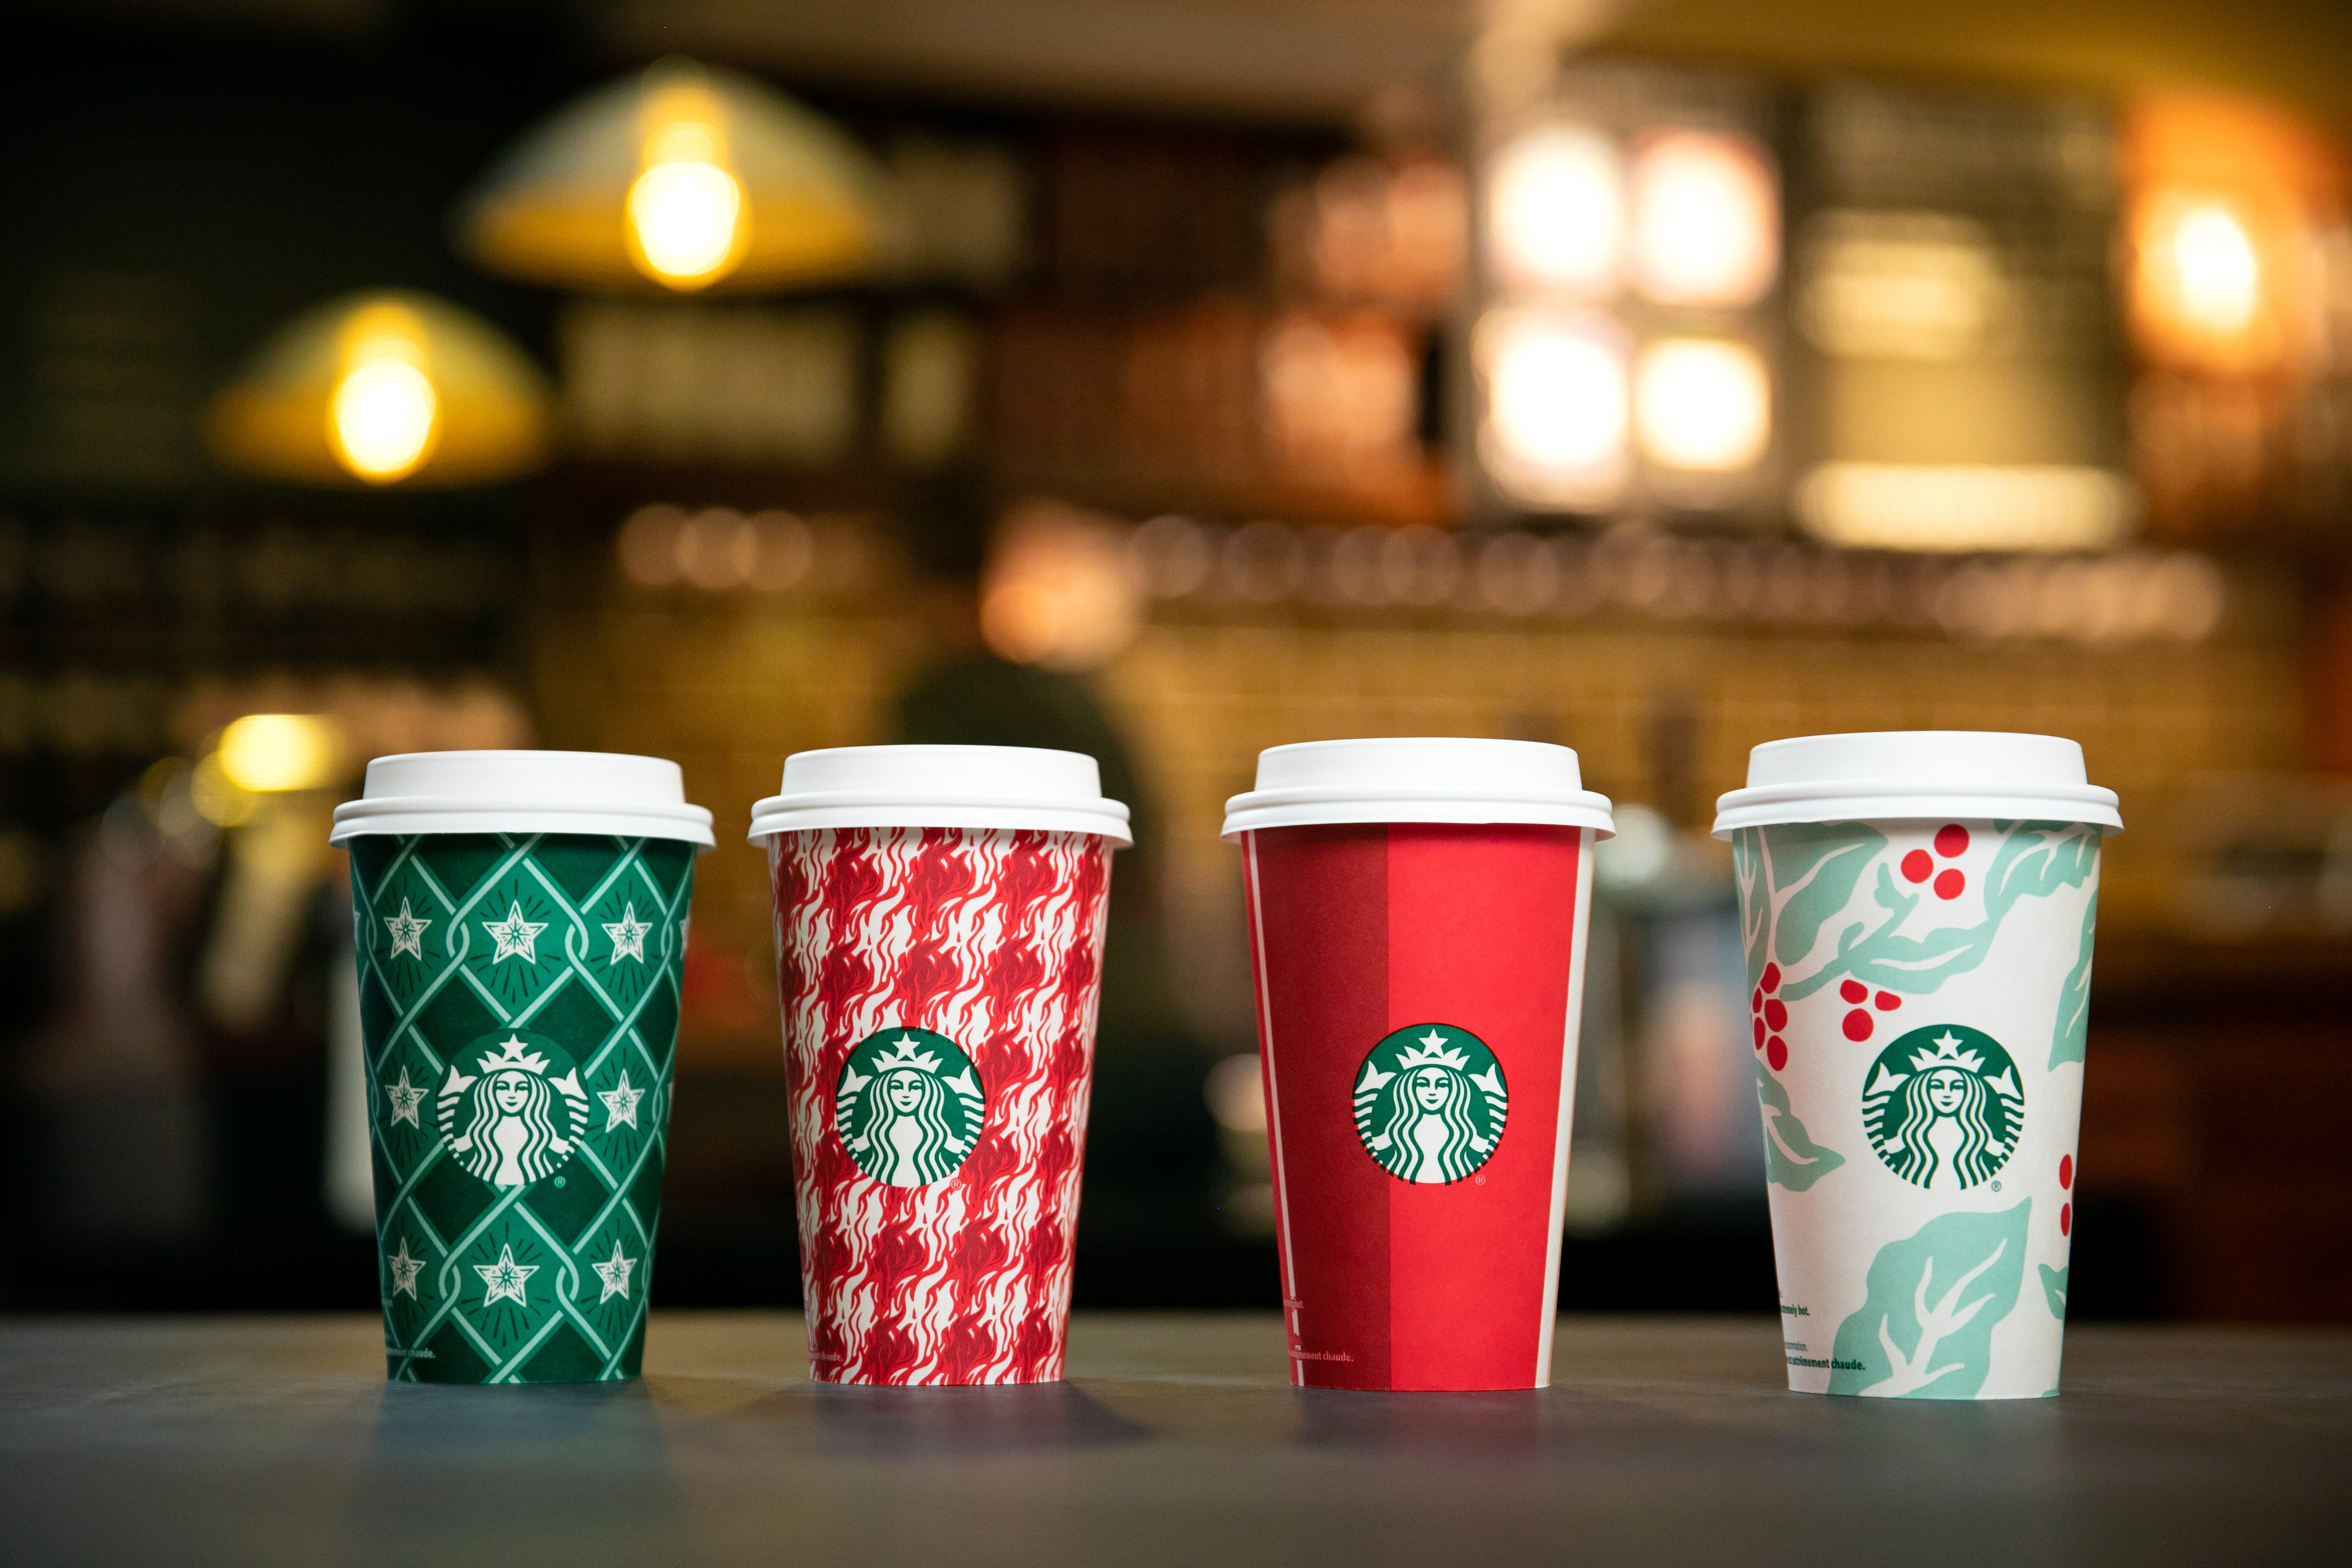 Starbucks Holiday Cups Reusable Red Cup Drinks Pastries